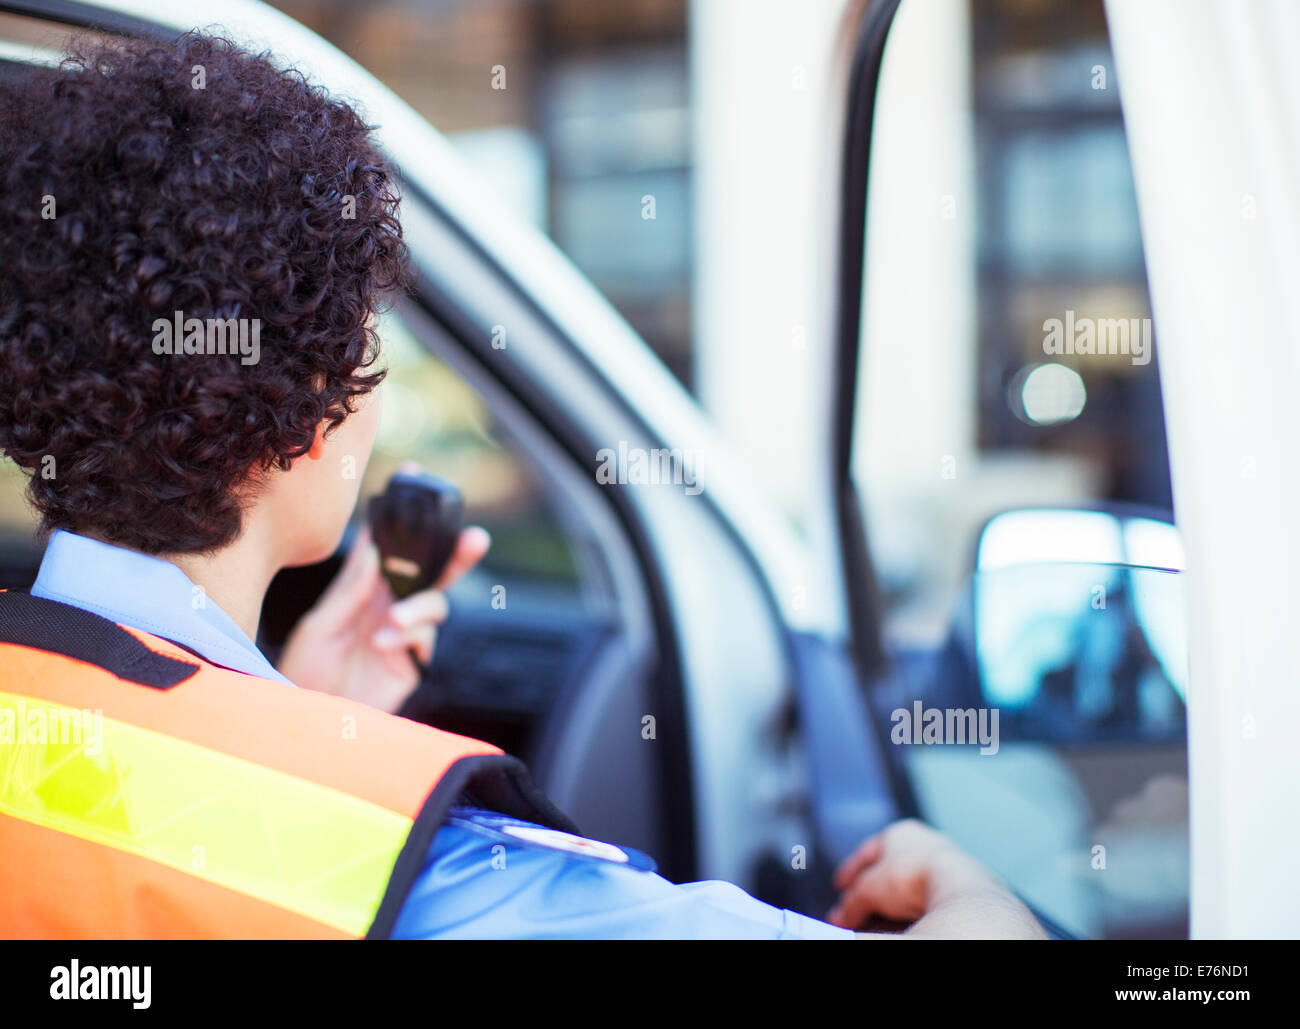 Paramedic using walkie talkie in ambulance - Stock Image